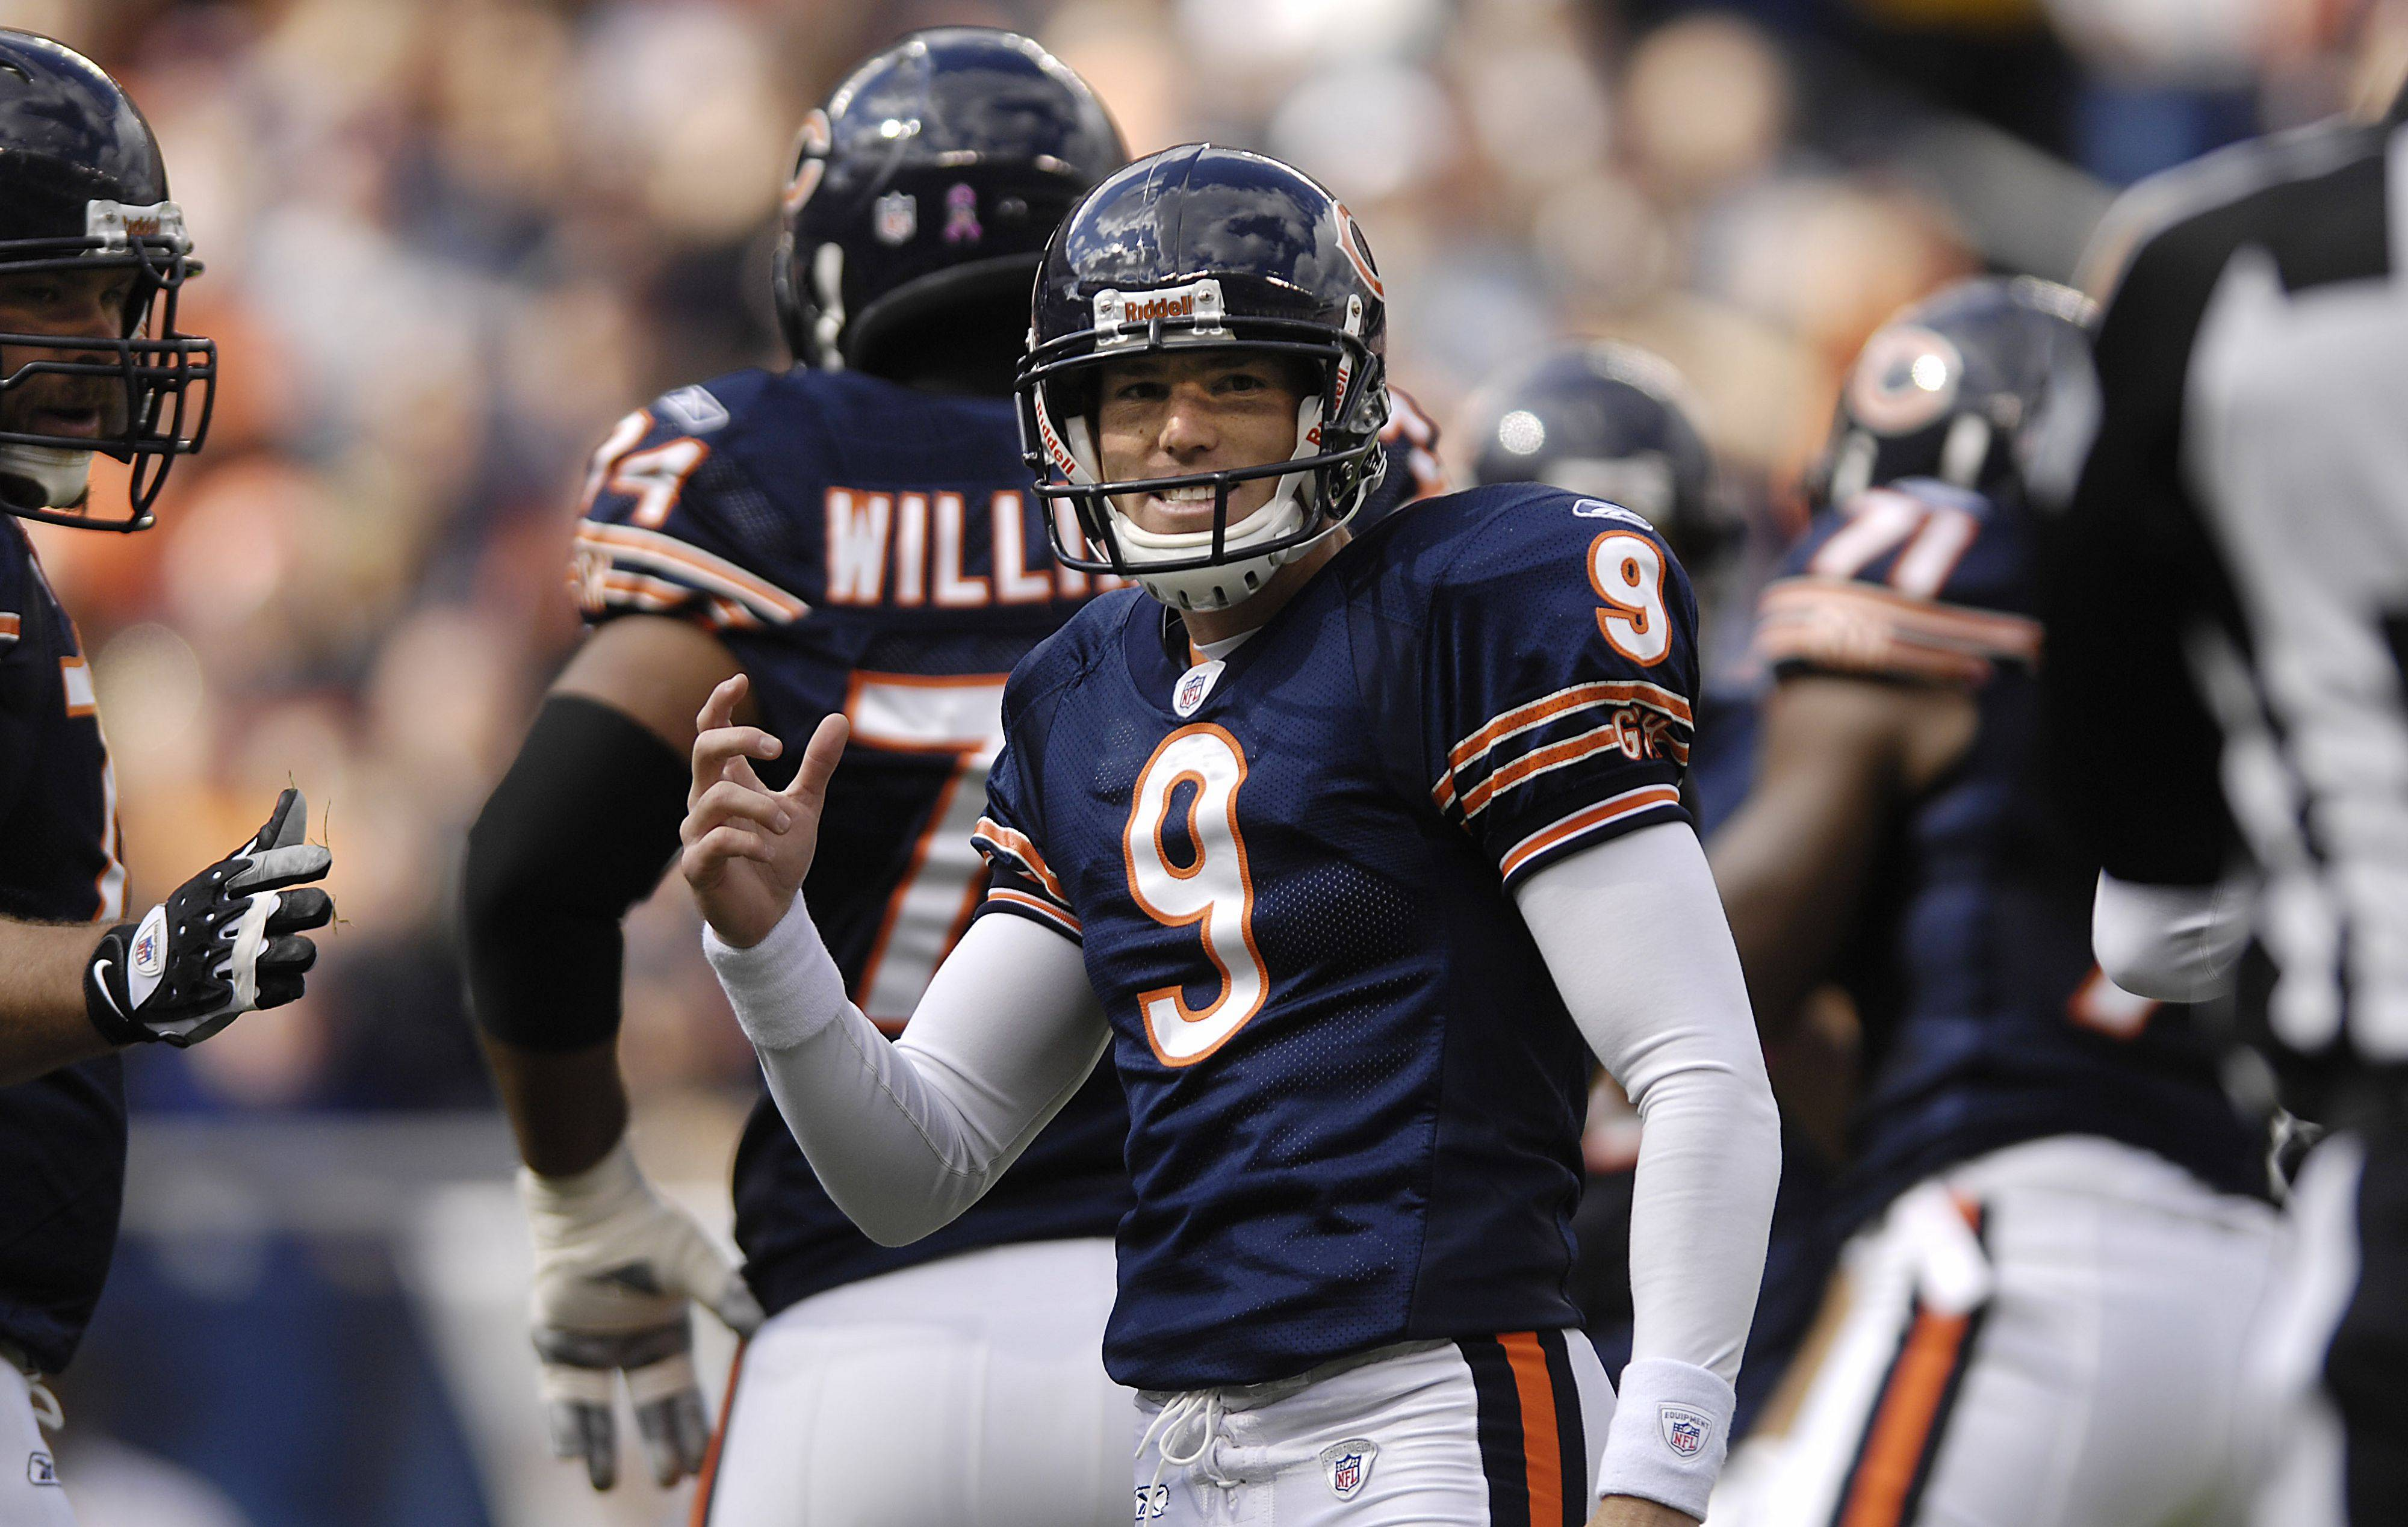 Bears' Gould optimistic as NFL talks continue